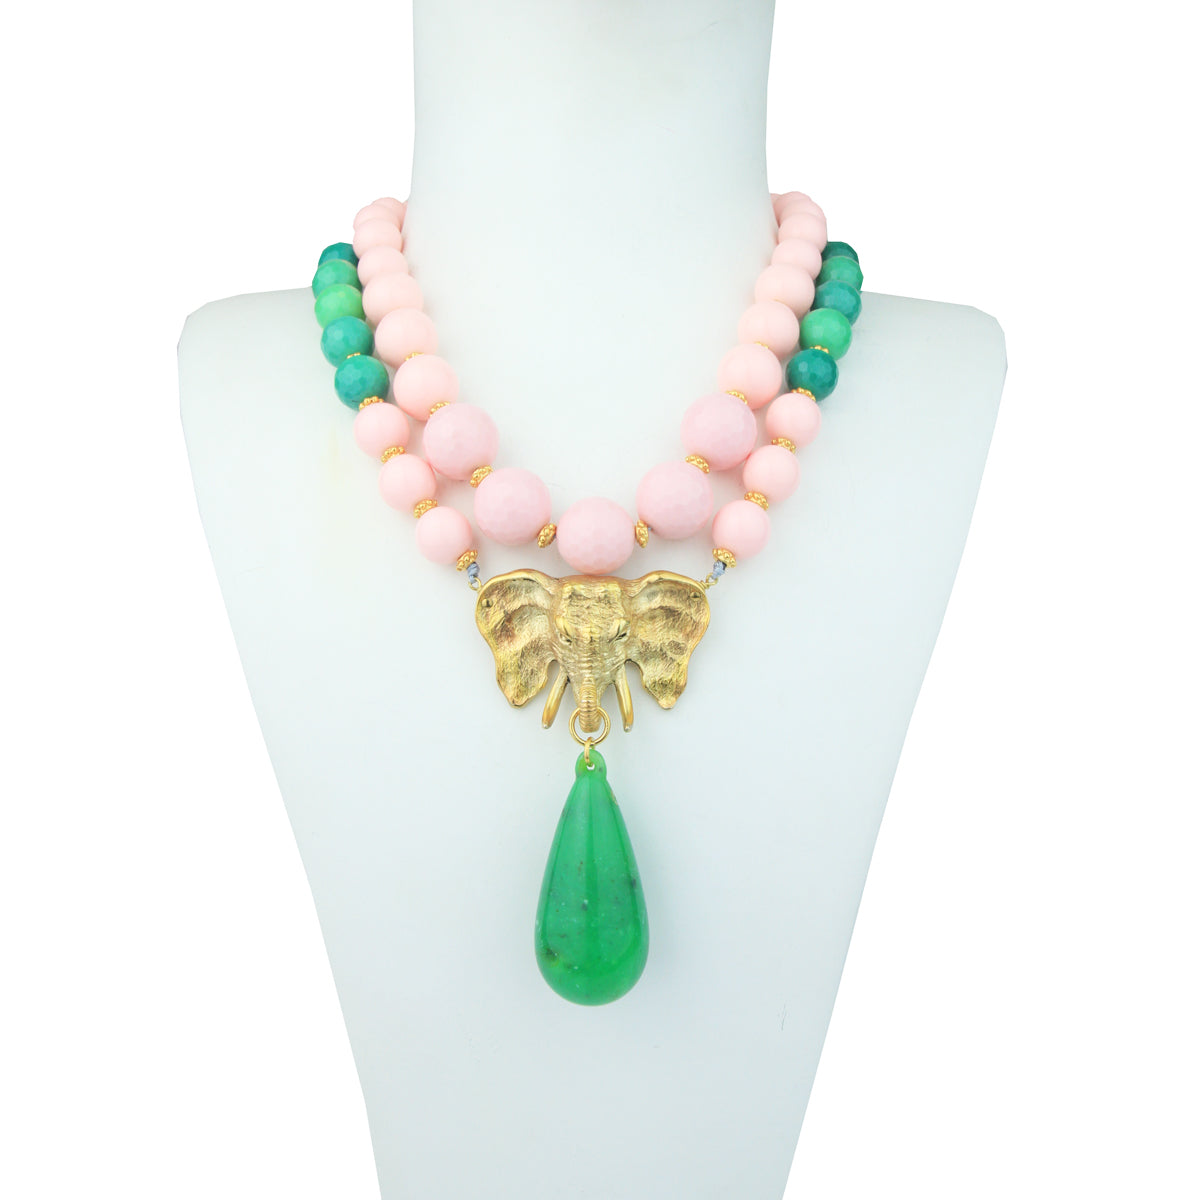 Iris Chrysoprase and Coral Paste Beads Short Necklace with Gold Plated Elephant